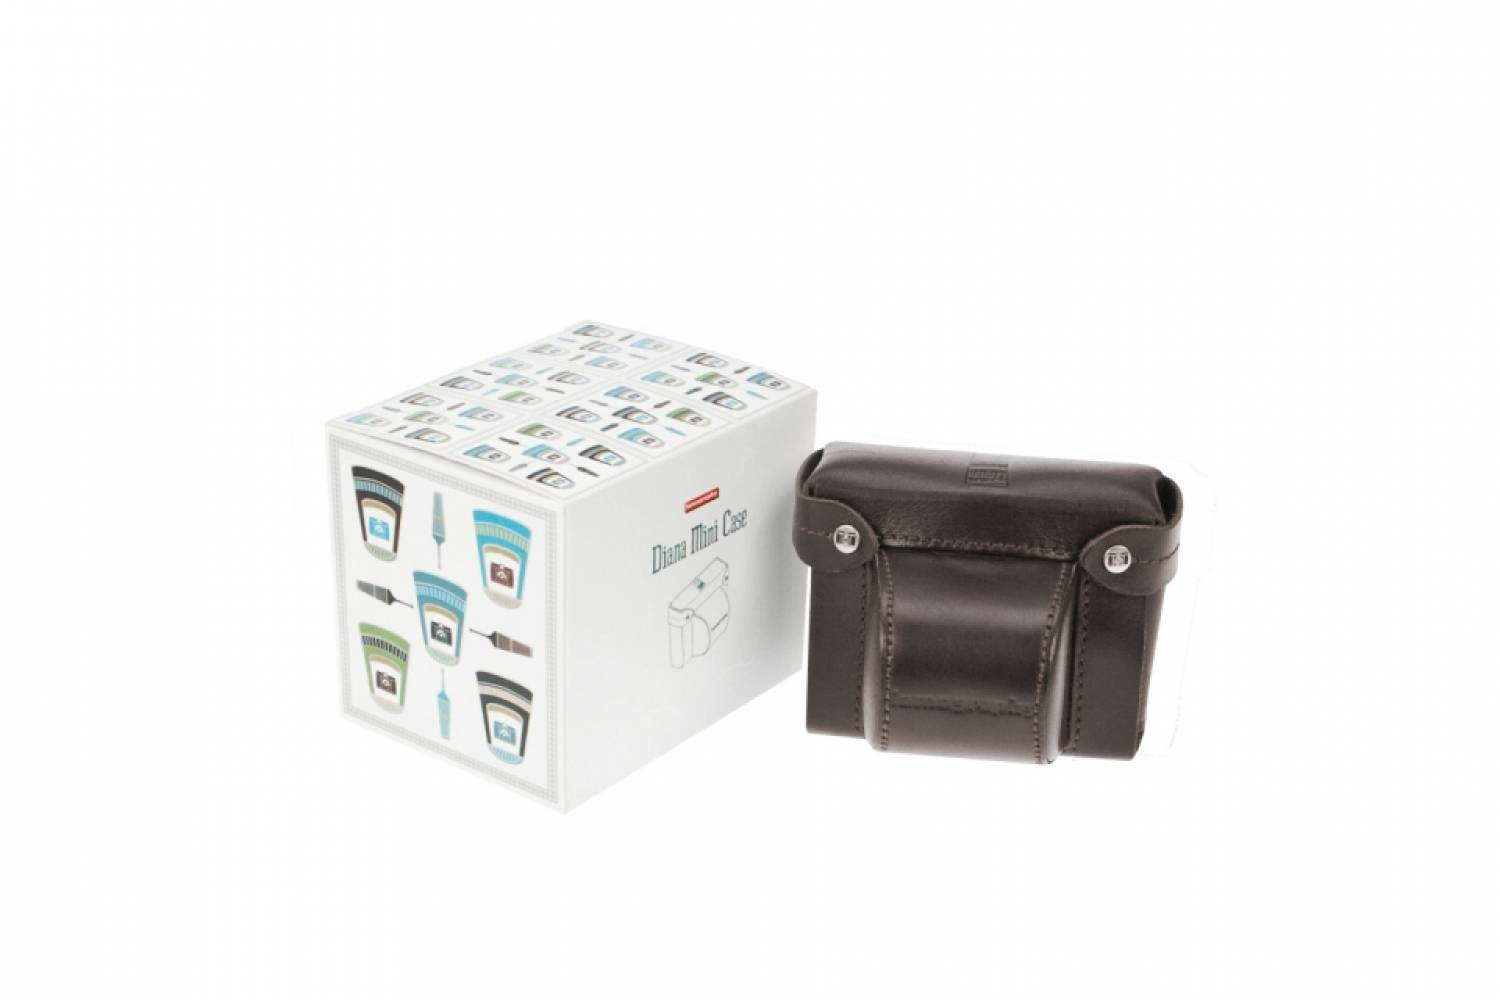 Lomography diana mini case b550b fotografie plaza belgi for Fotografie case